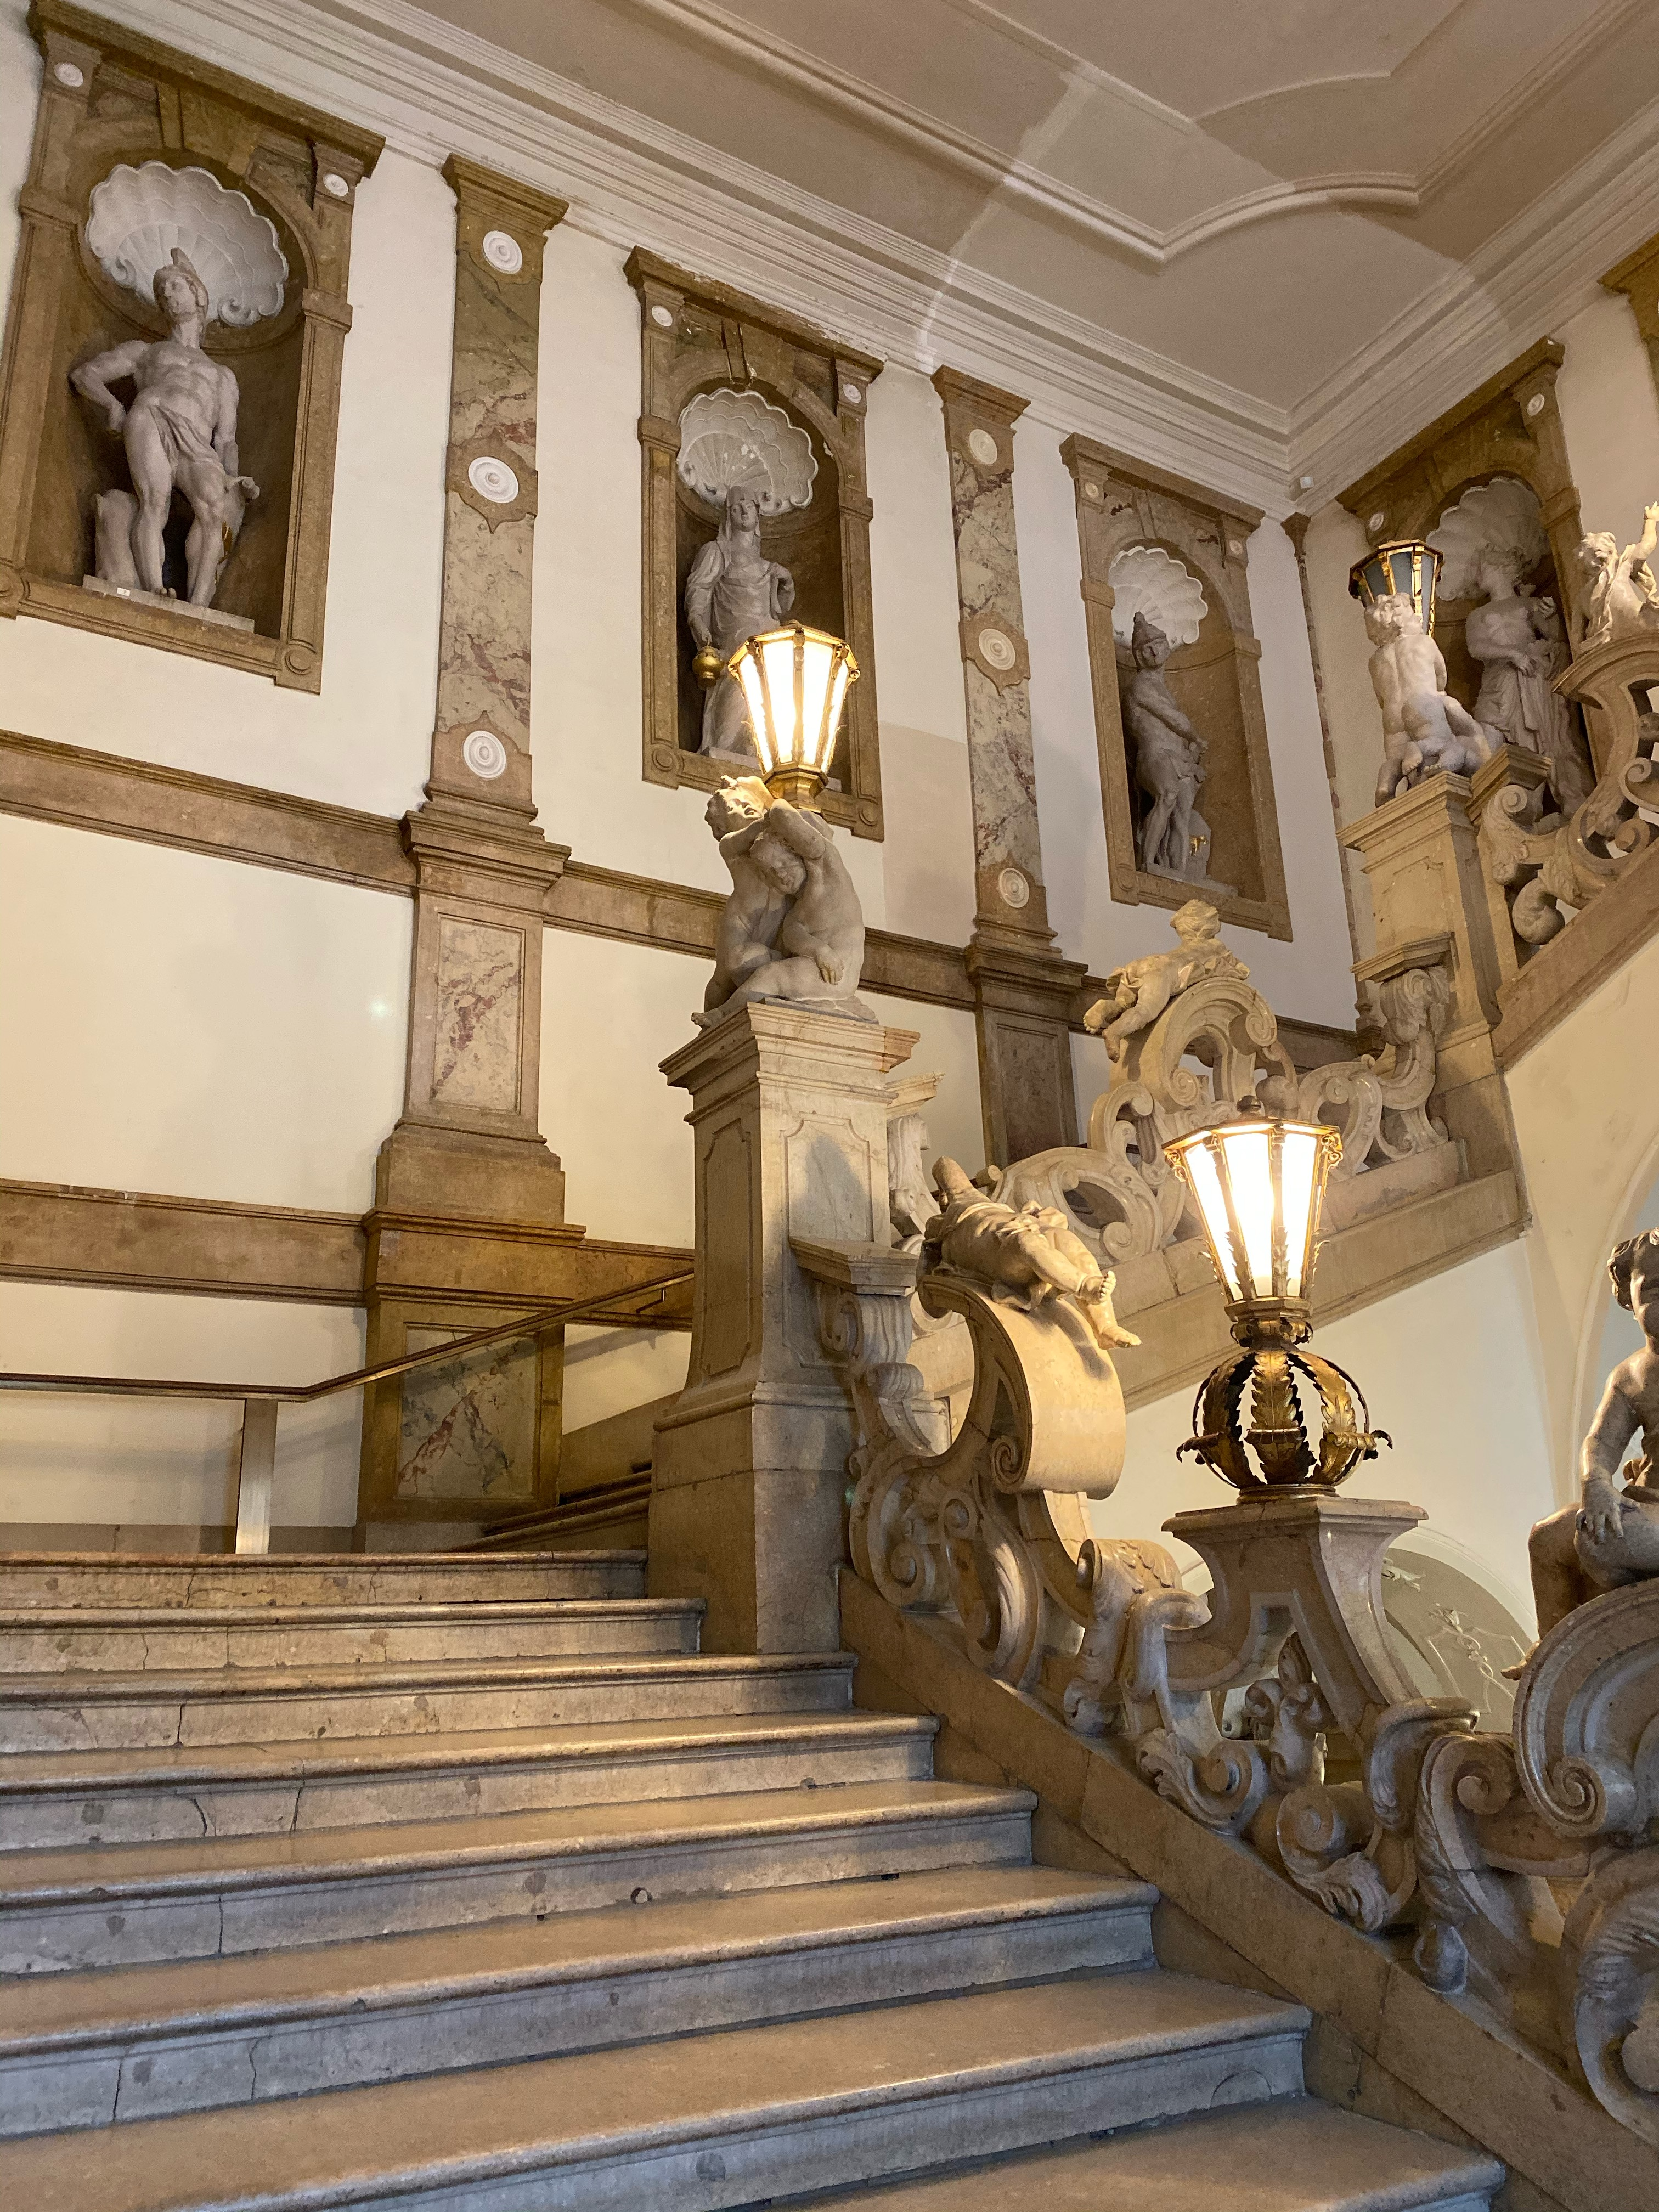 The marble staircase leading up to the Marble Hall at Schloss Mirabell in Salzburg.